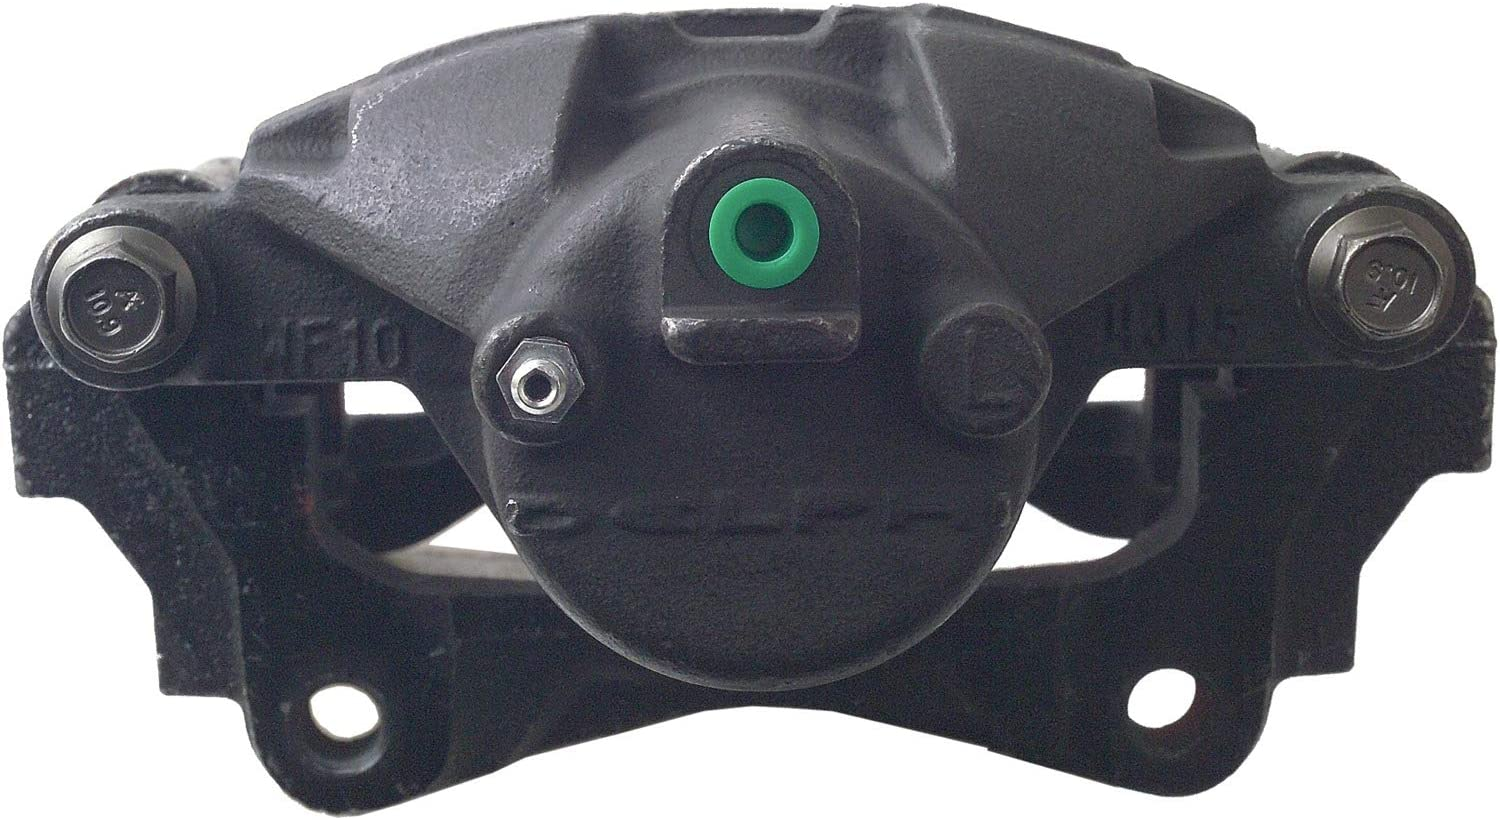 Brake Caliper Unloaded Cardone 18-B5034 Remanufactured Domestic Friction Ready